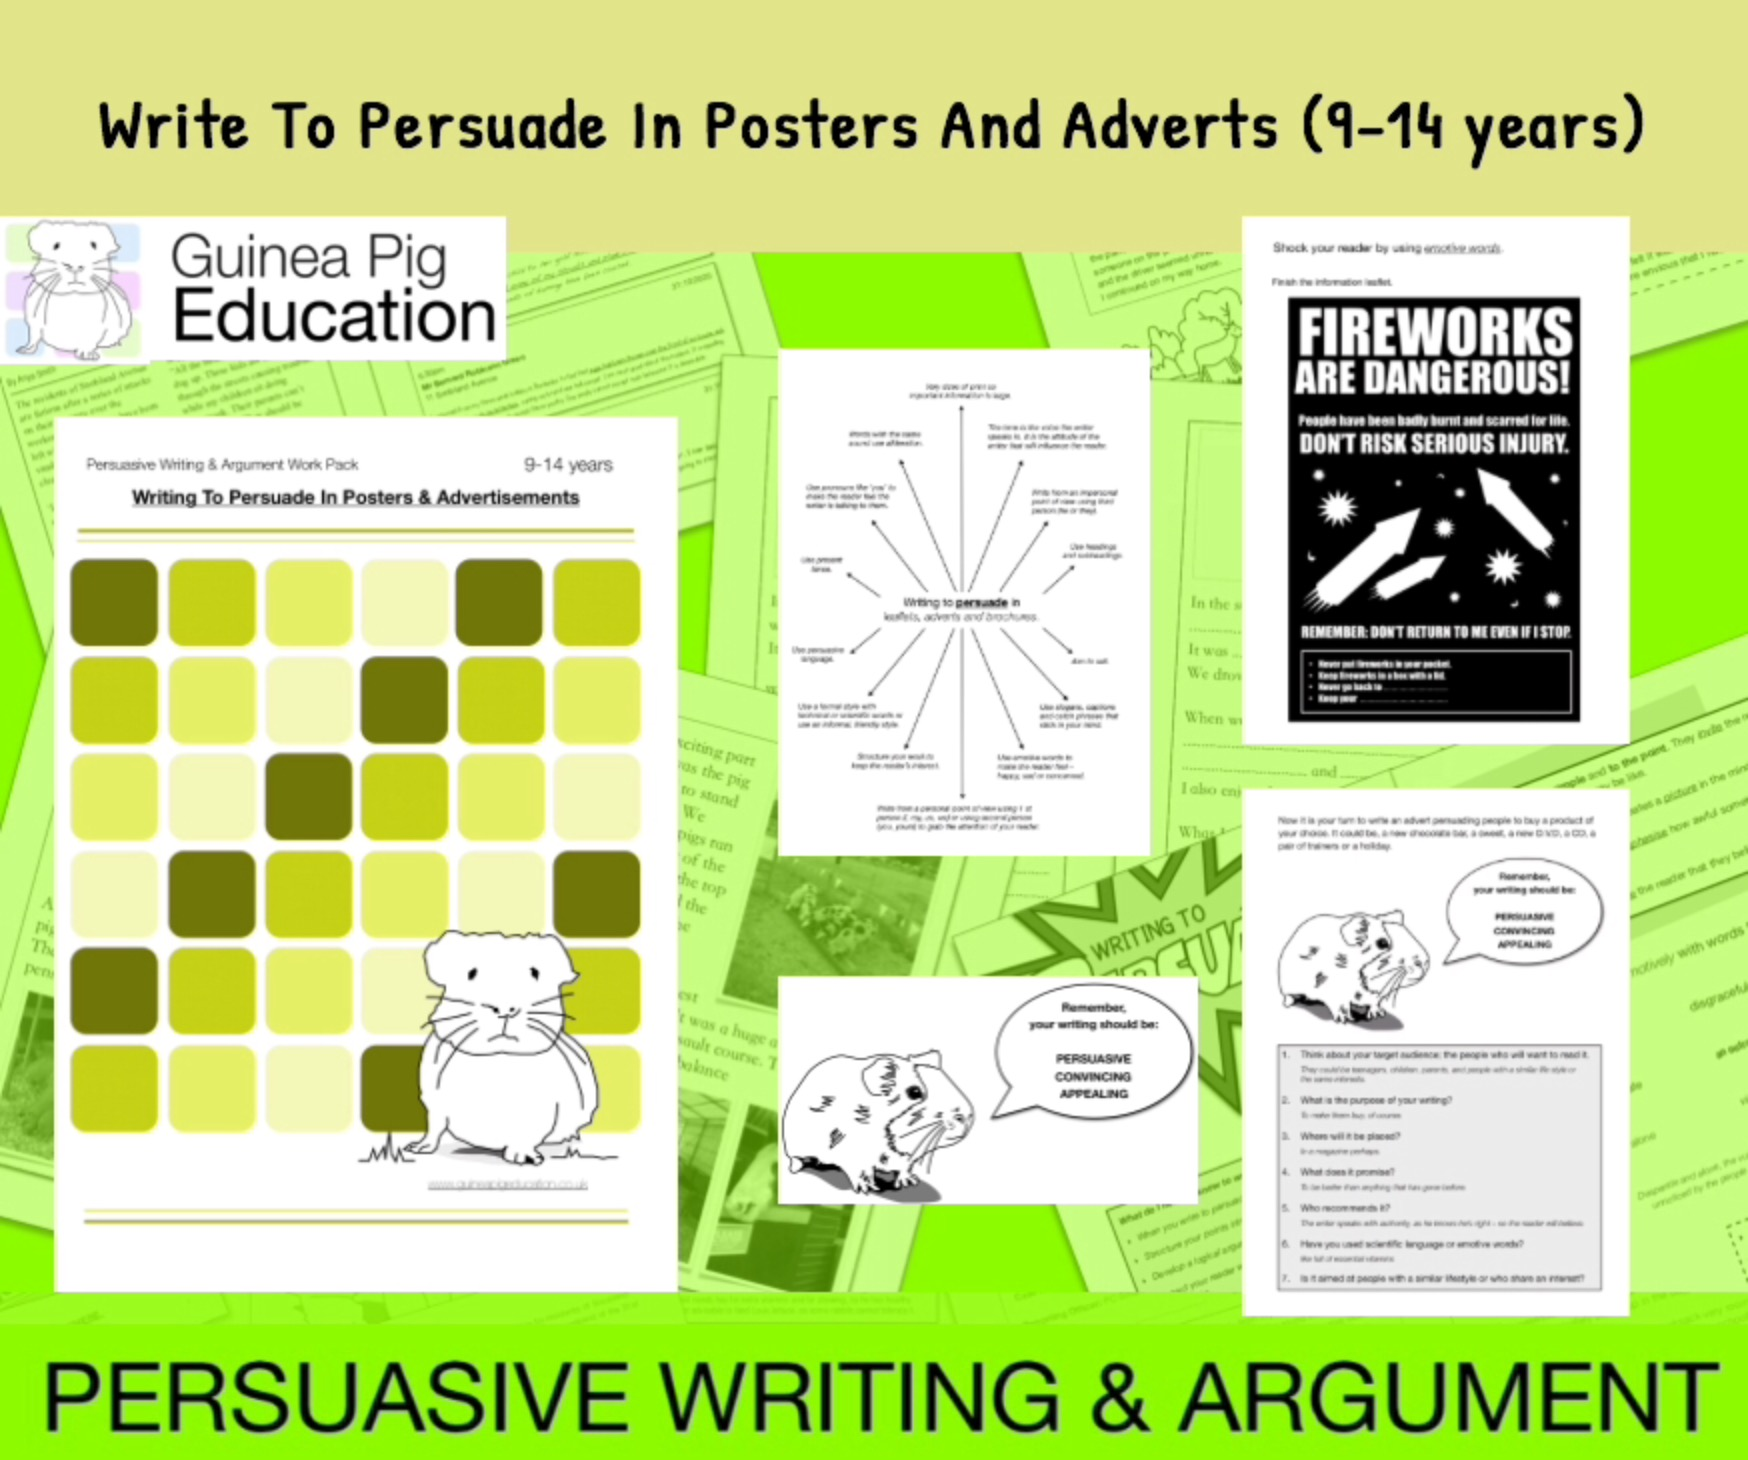 How To Write To Persuade In Posters And Adverts (9-14 years)